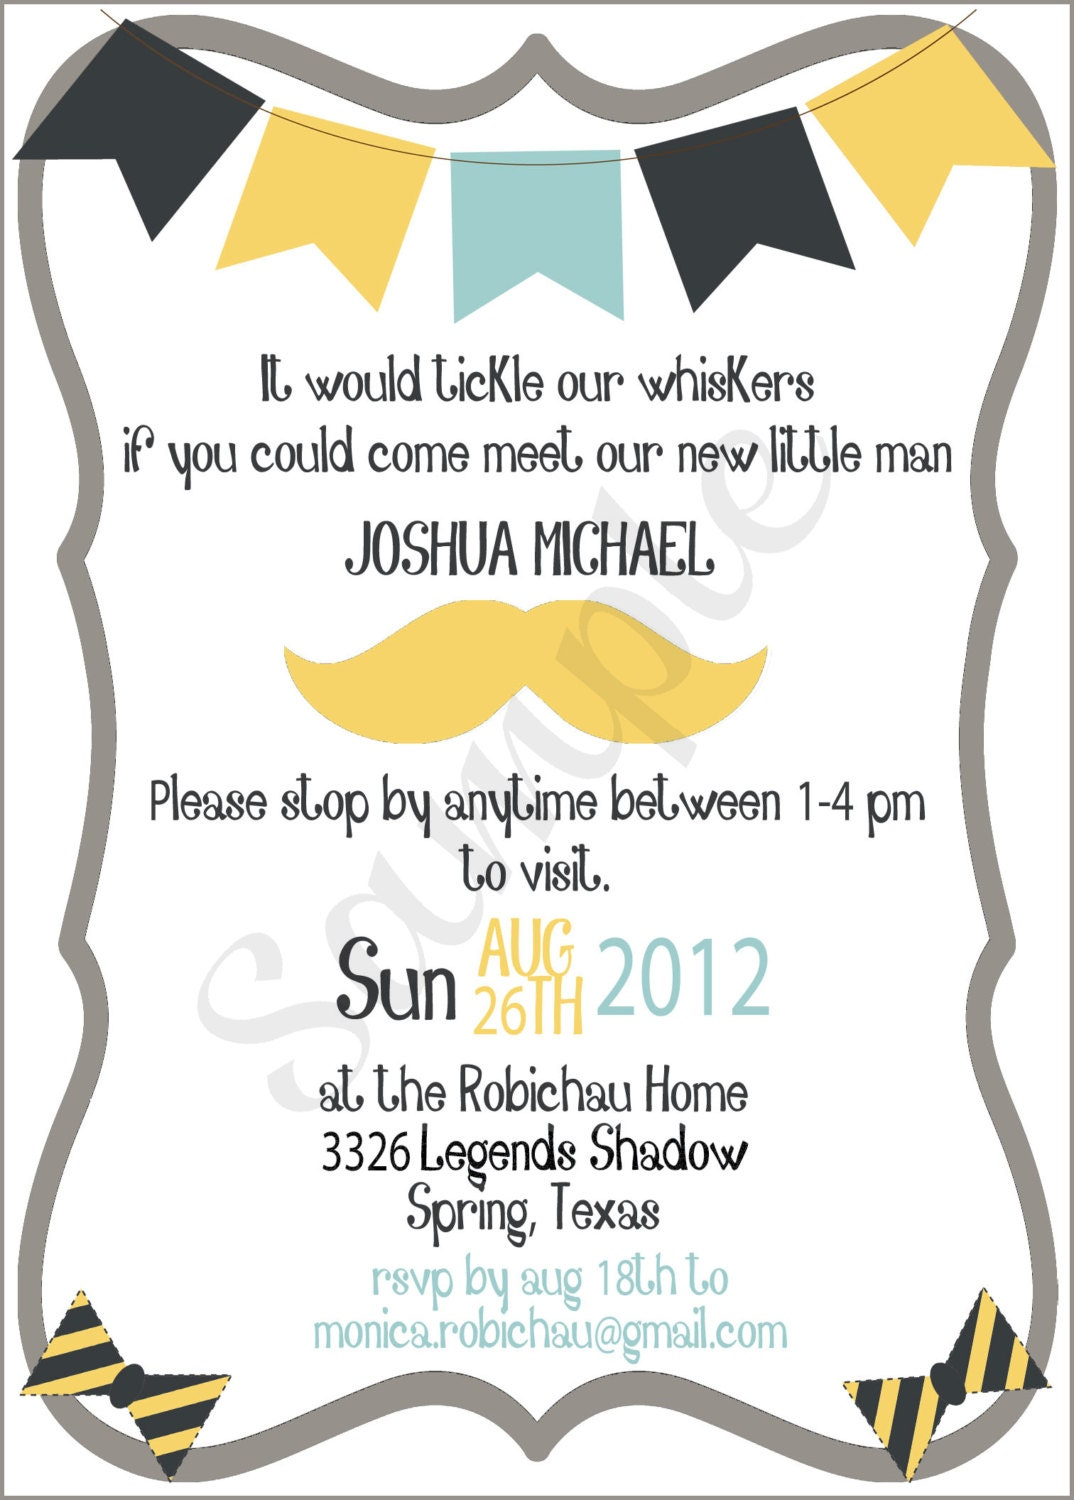 Meet And Greet Business Invite | Party Invitations Ideas